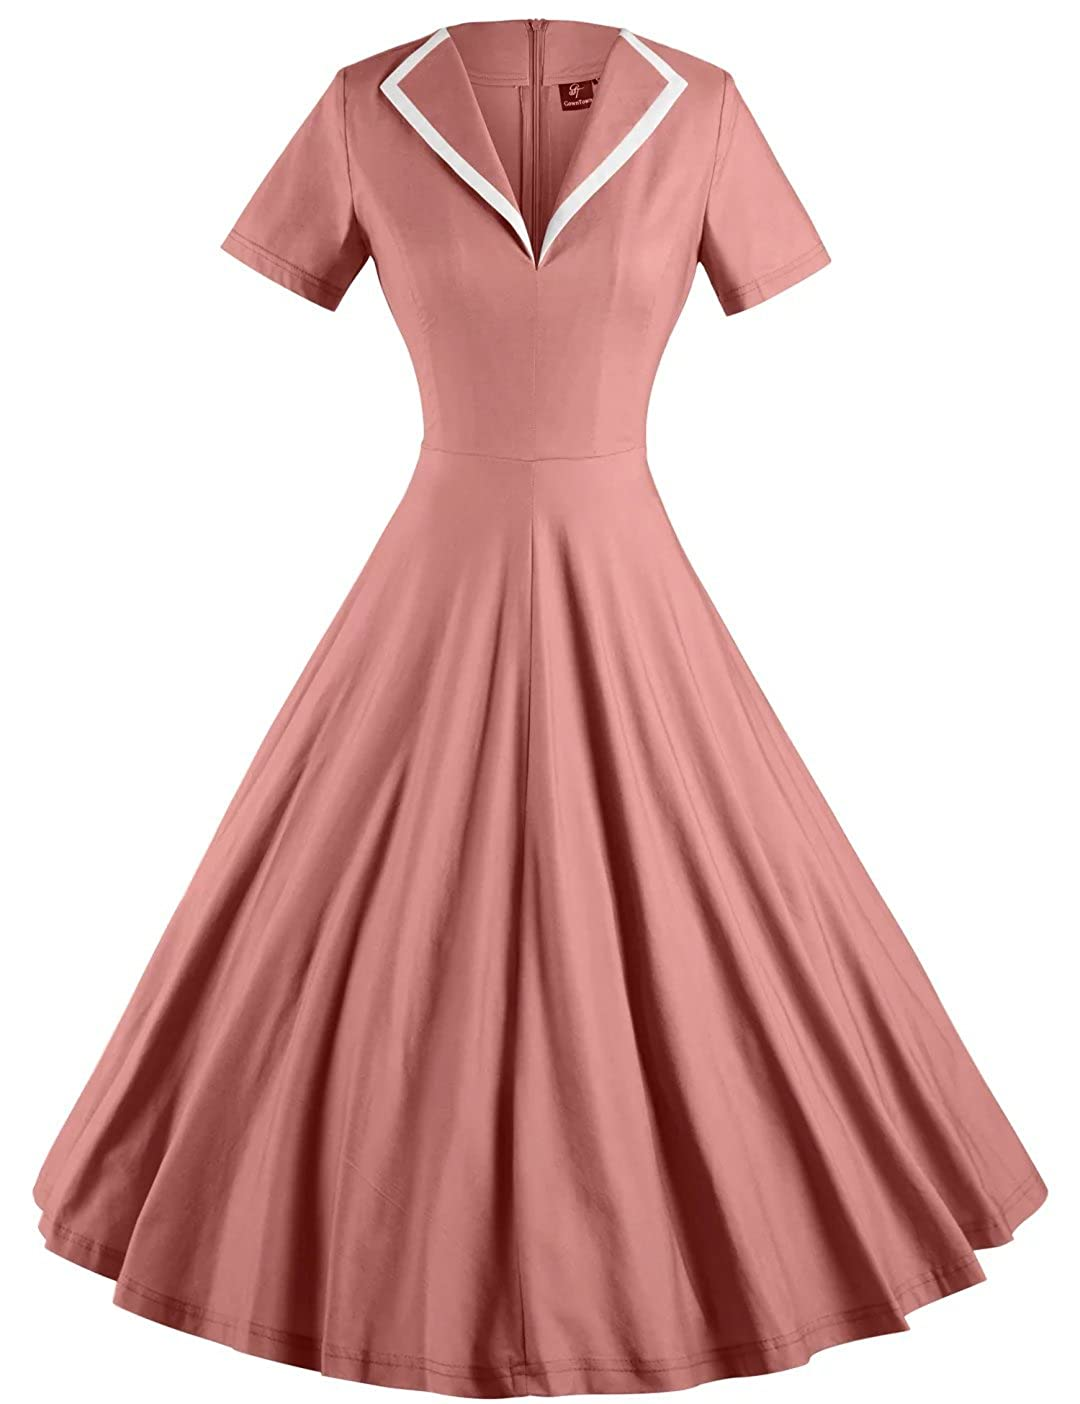 Sailor Dresses, Nautical Theme Dress, WW2 Dresses GownTown Womens 1950s Retro Vintage V-Neck Party Swing Dress $35.98 AT vintagedancer.com